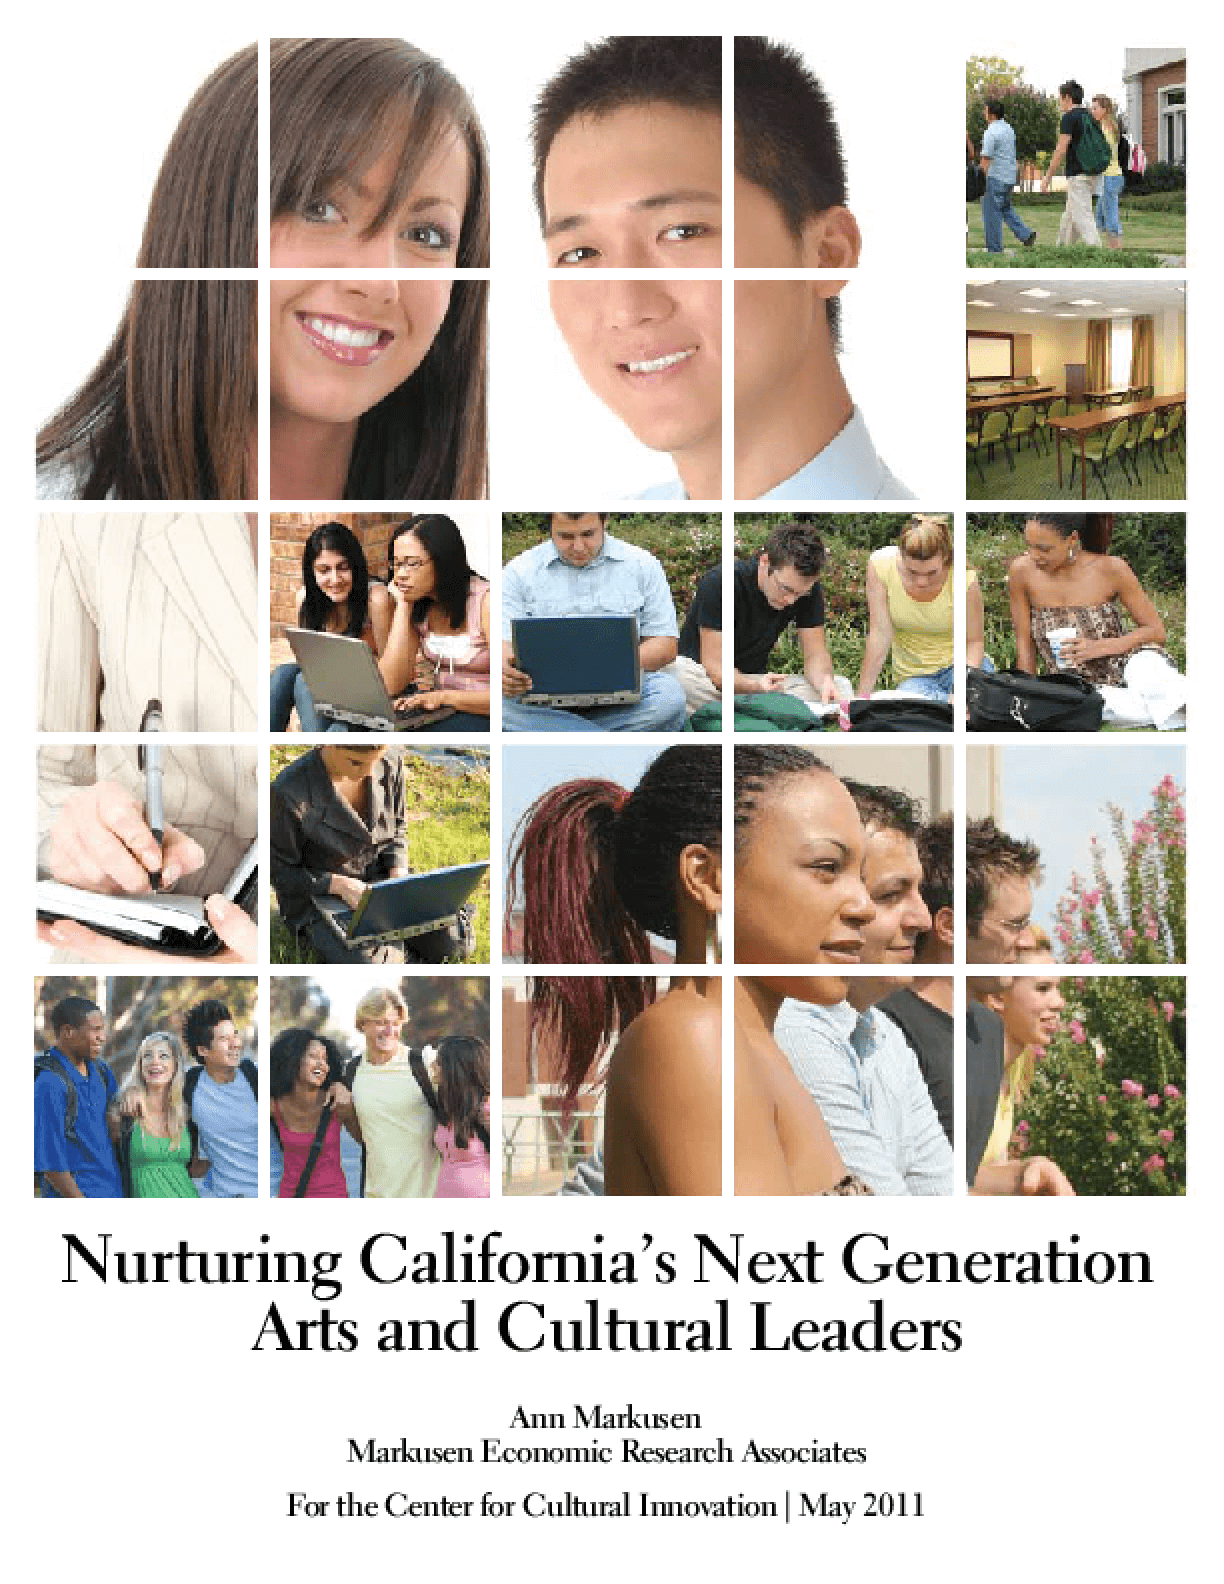 Nurturing California's Next Generation Arts and Cultural Leaders